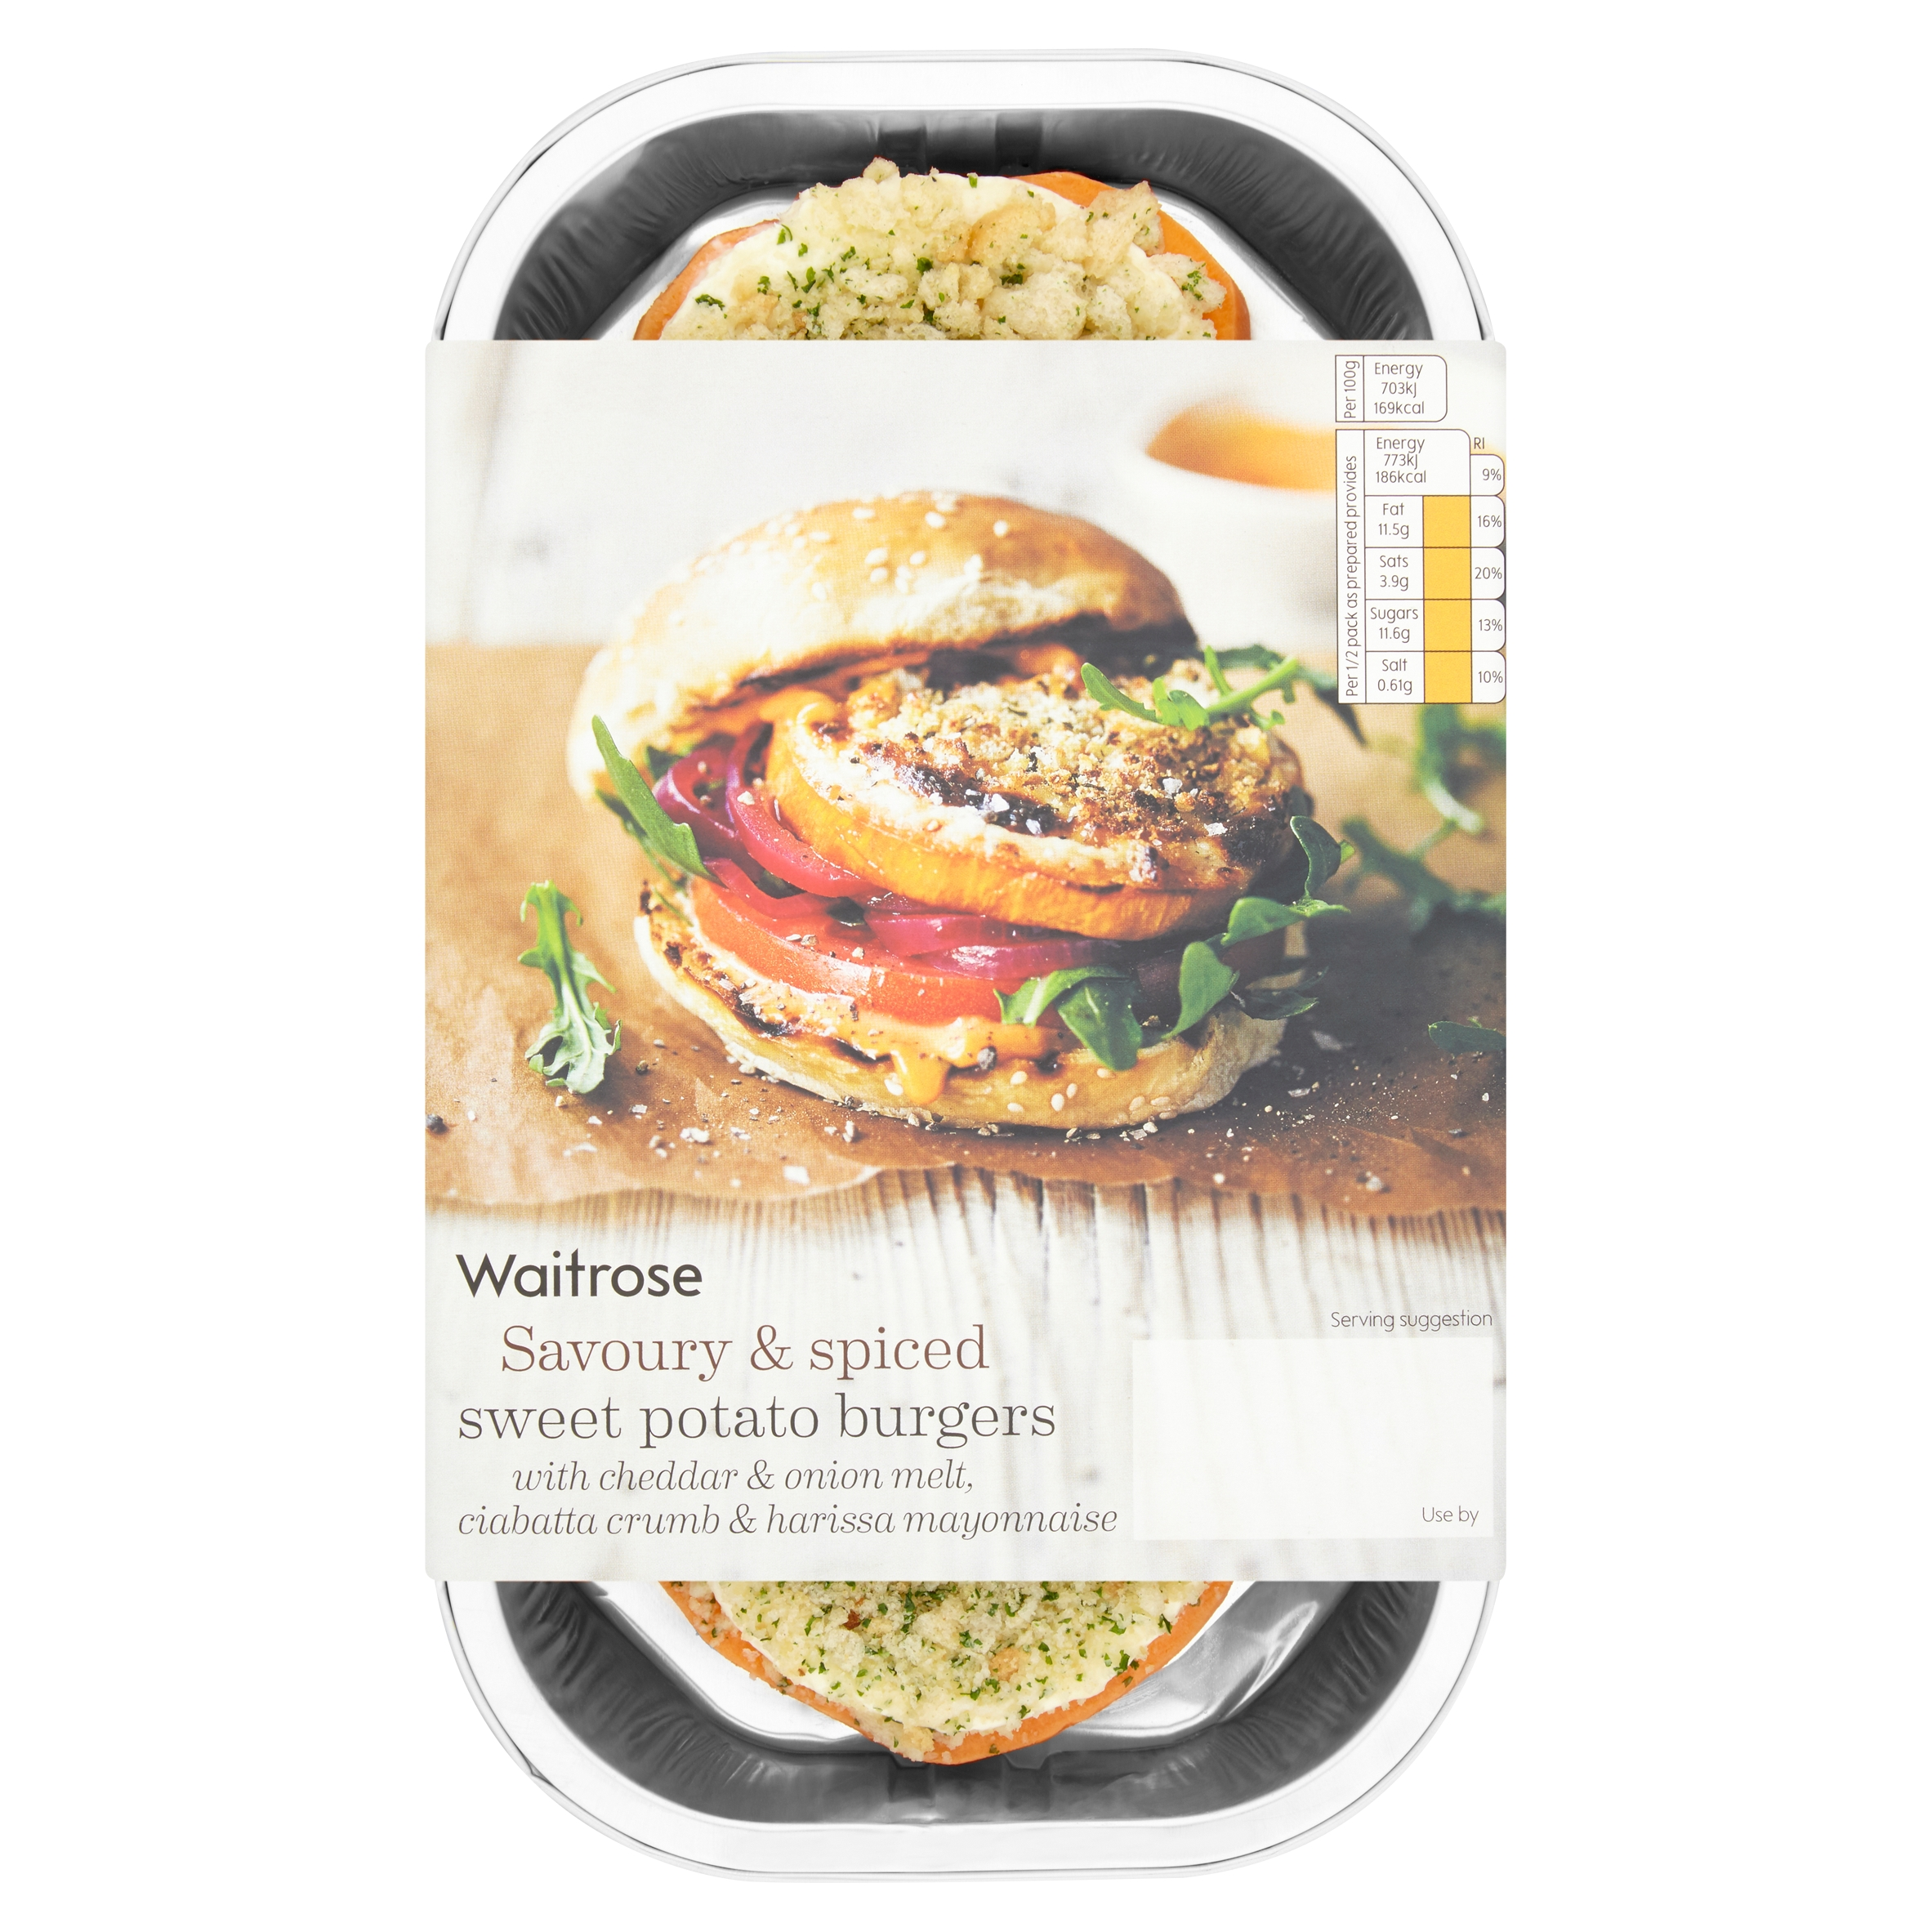 Sweet potato burgers from Waitrose